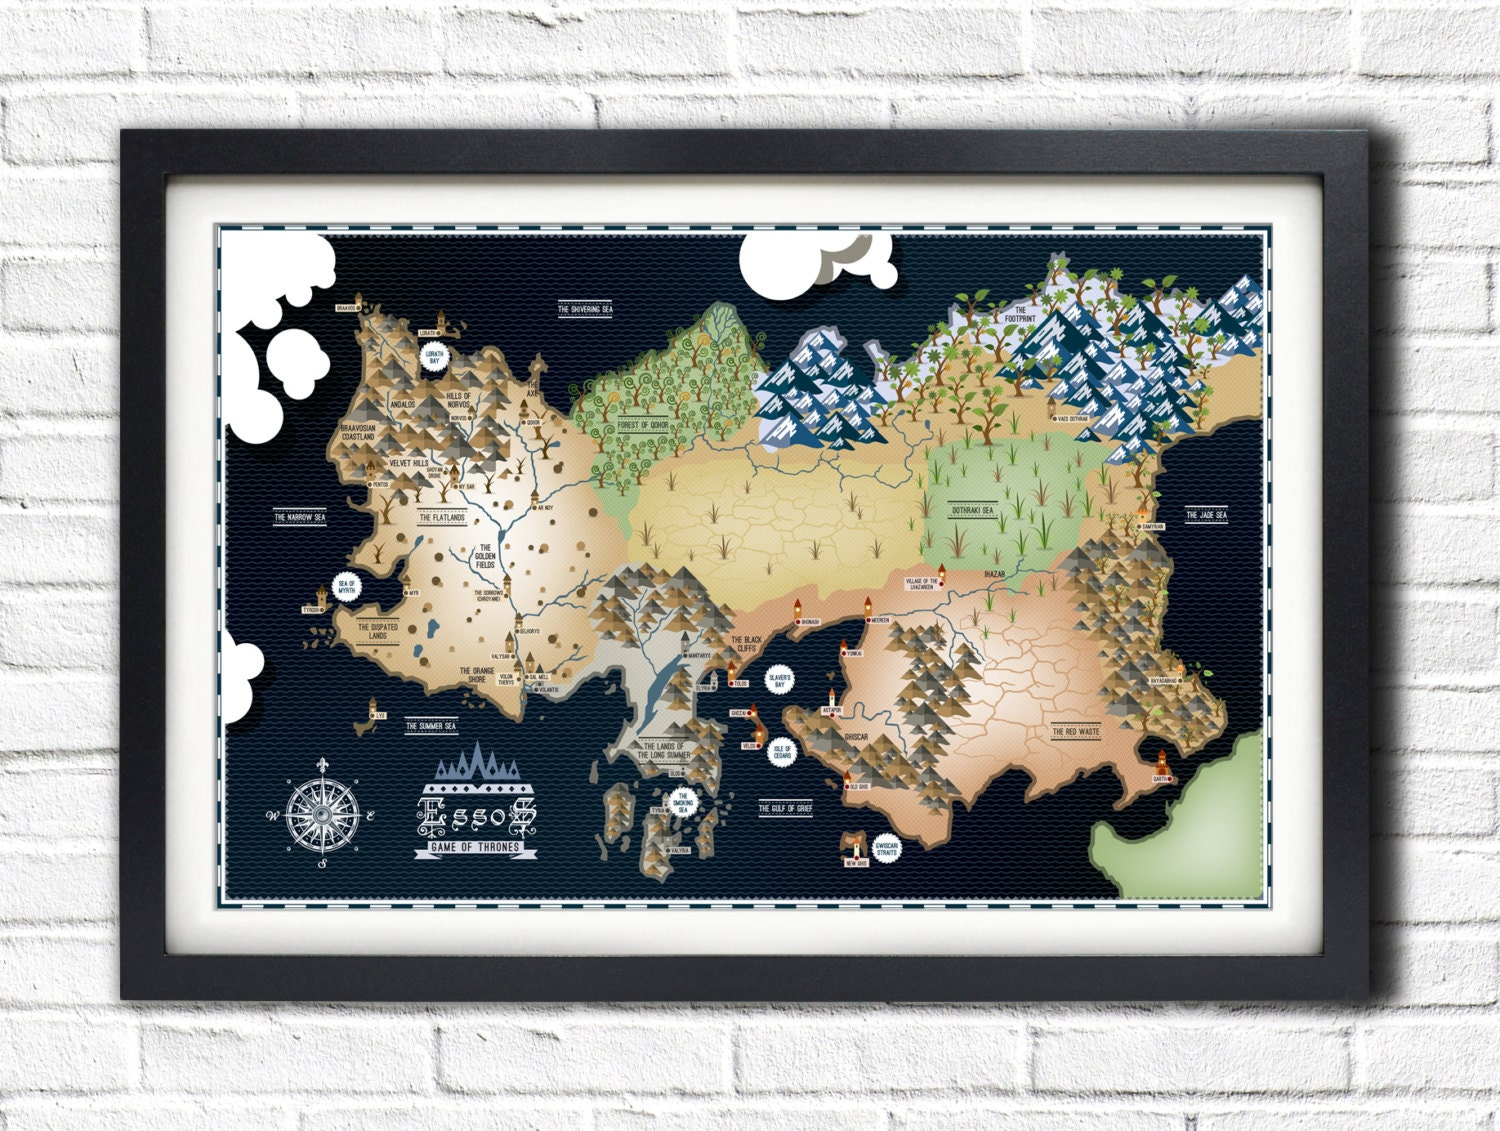 Game of thrones map poster game of thrones essos map x poster il game of thrones map poster gumiabroncs Choice Image